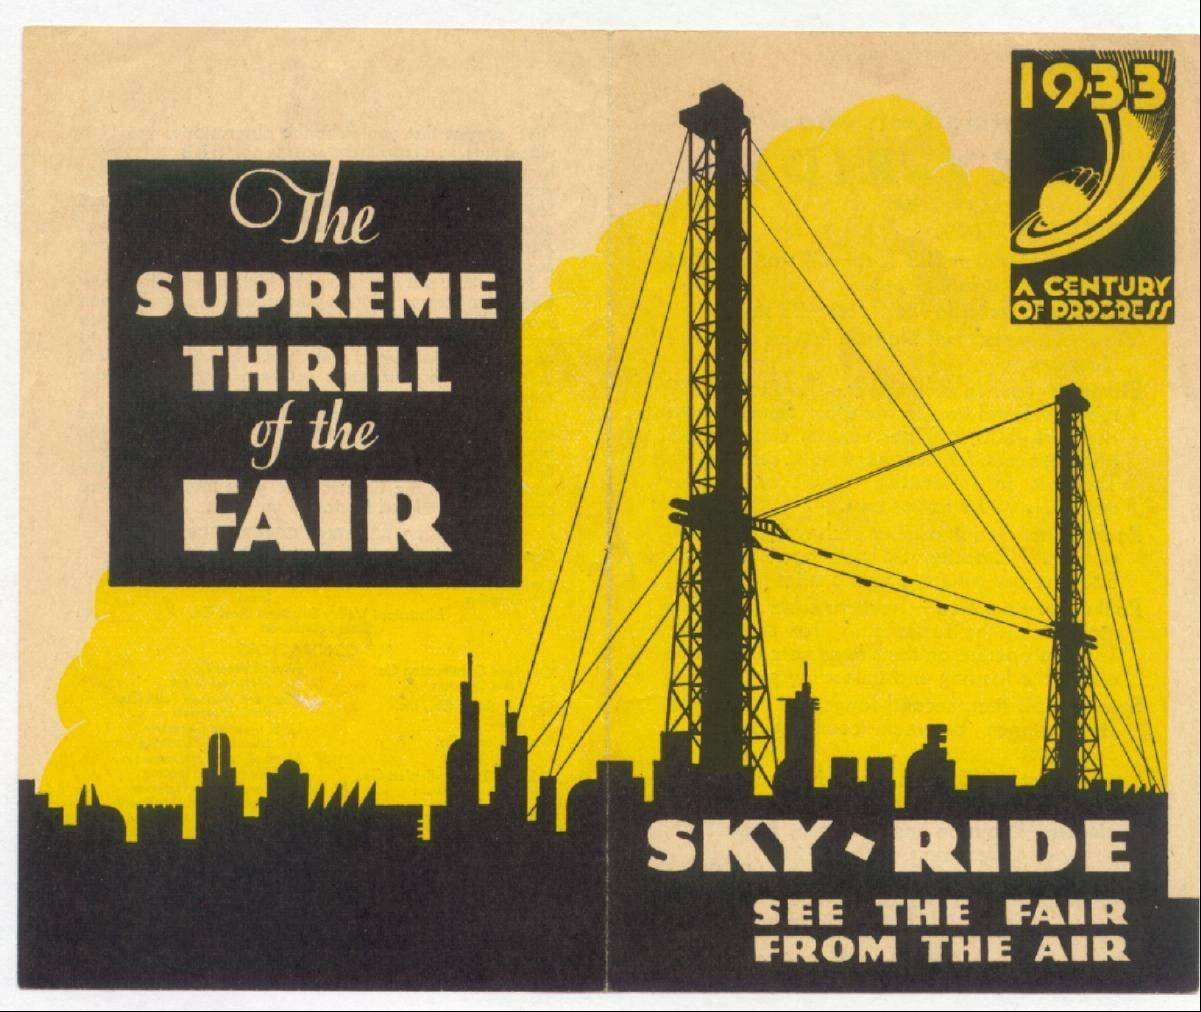 A flier for the skyride at the 1933 World's Fair is one of the items featured at the 19th annual World's Fair Memorabilia Show.